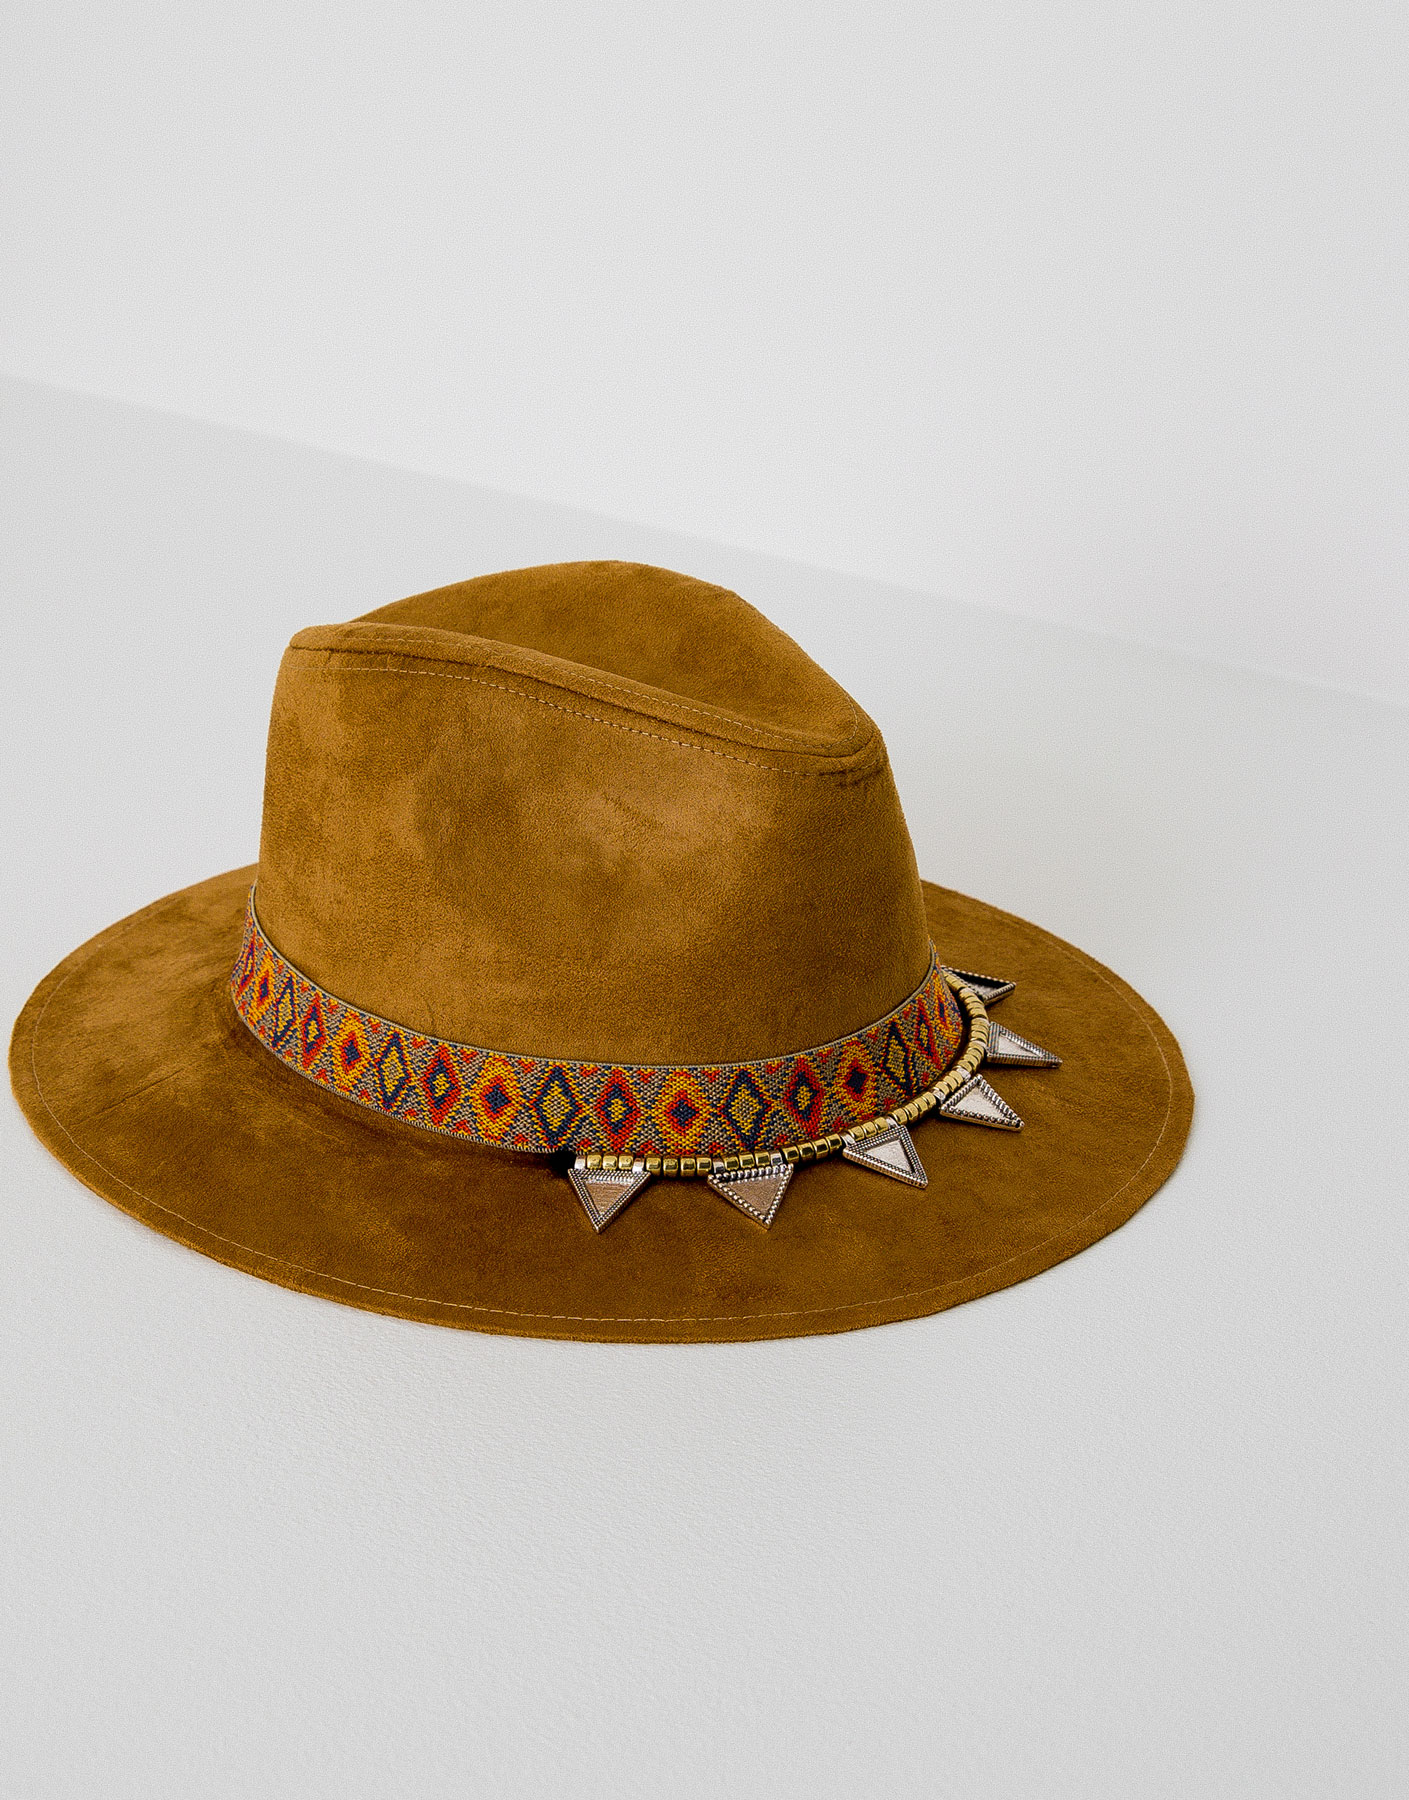 Hat with detailed band